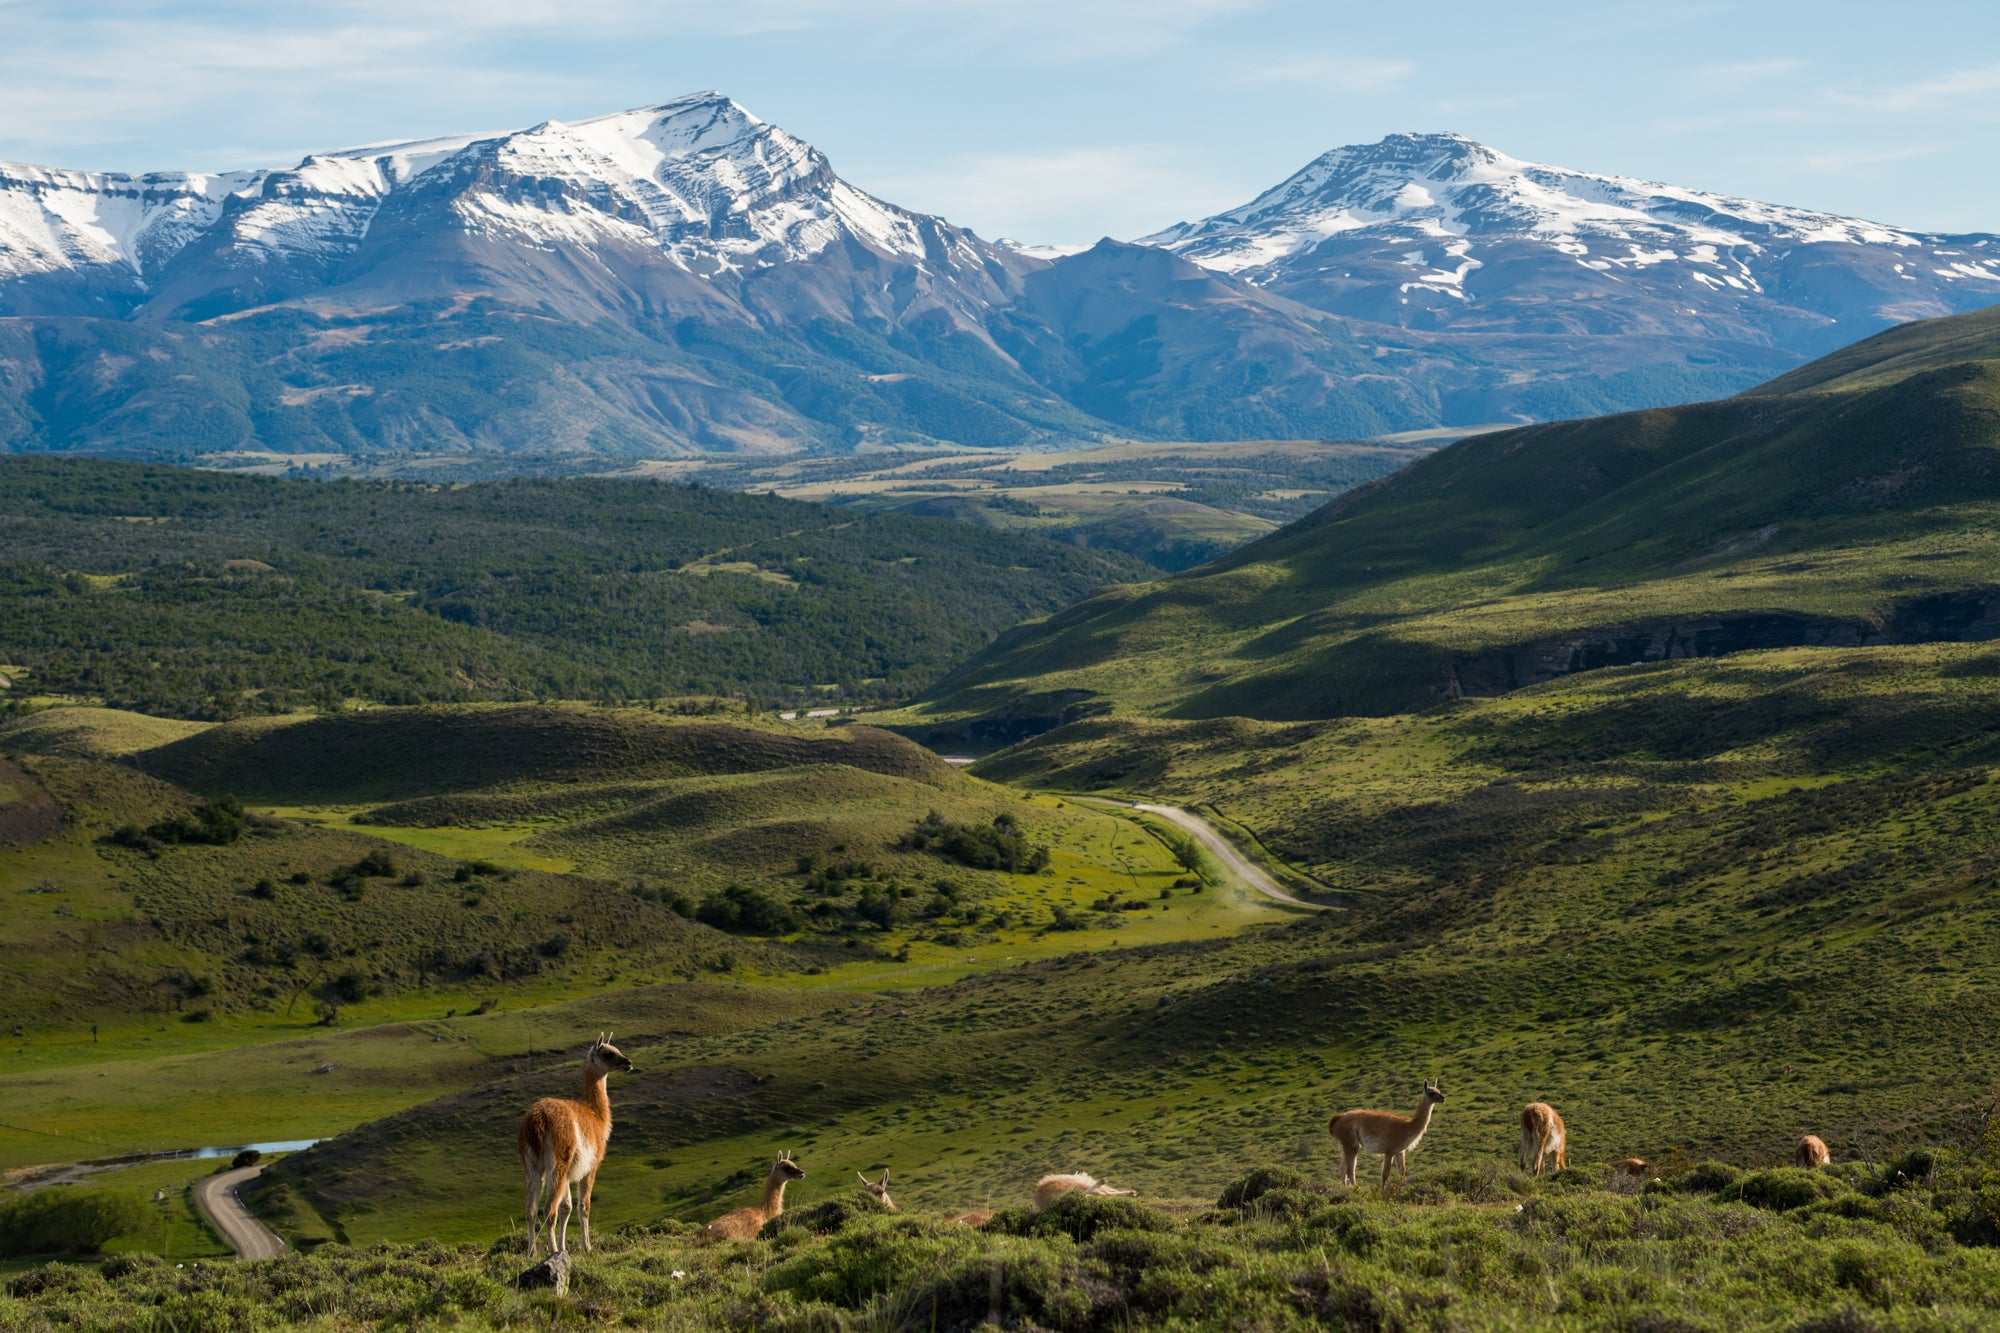 Fine art landscape photography from Torres del Paine